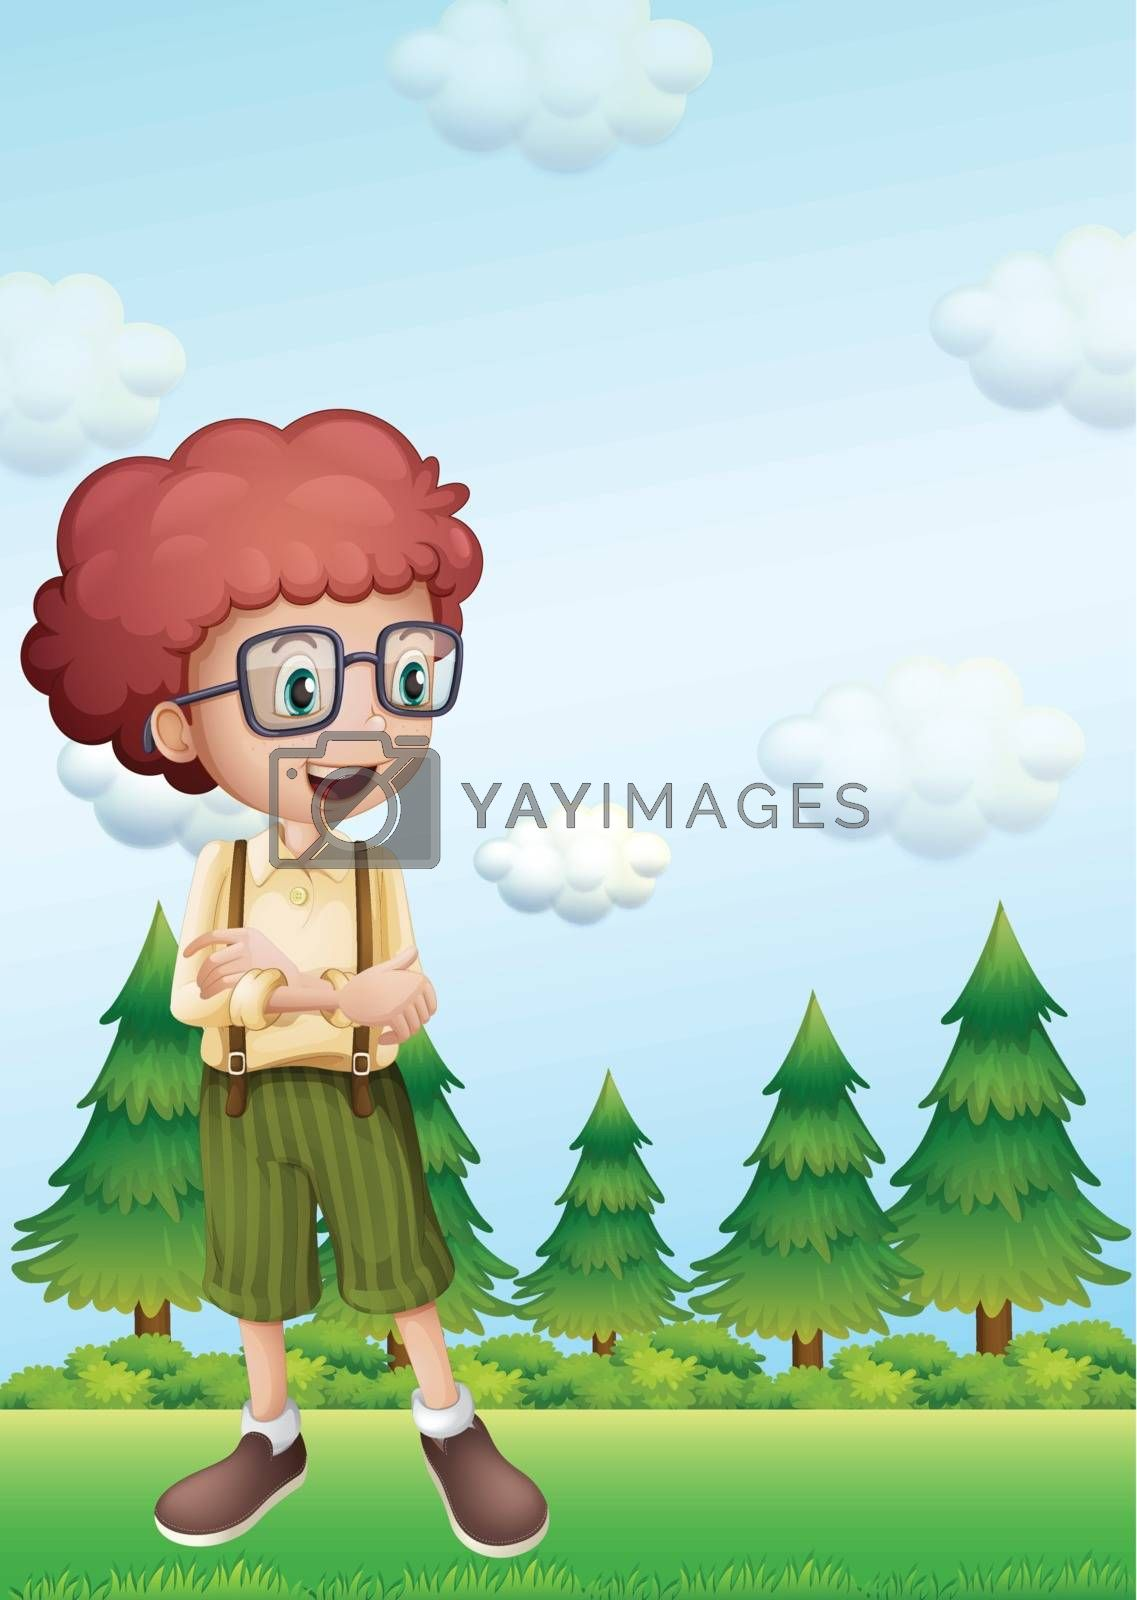 Illustration of a curly boy standing in front of the pine trees